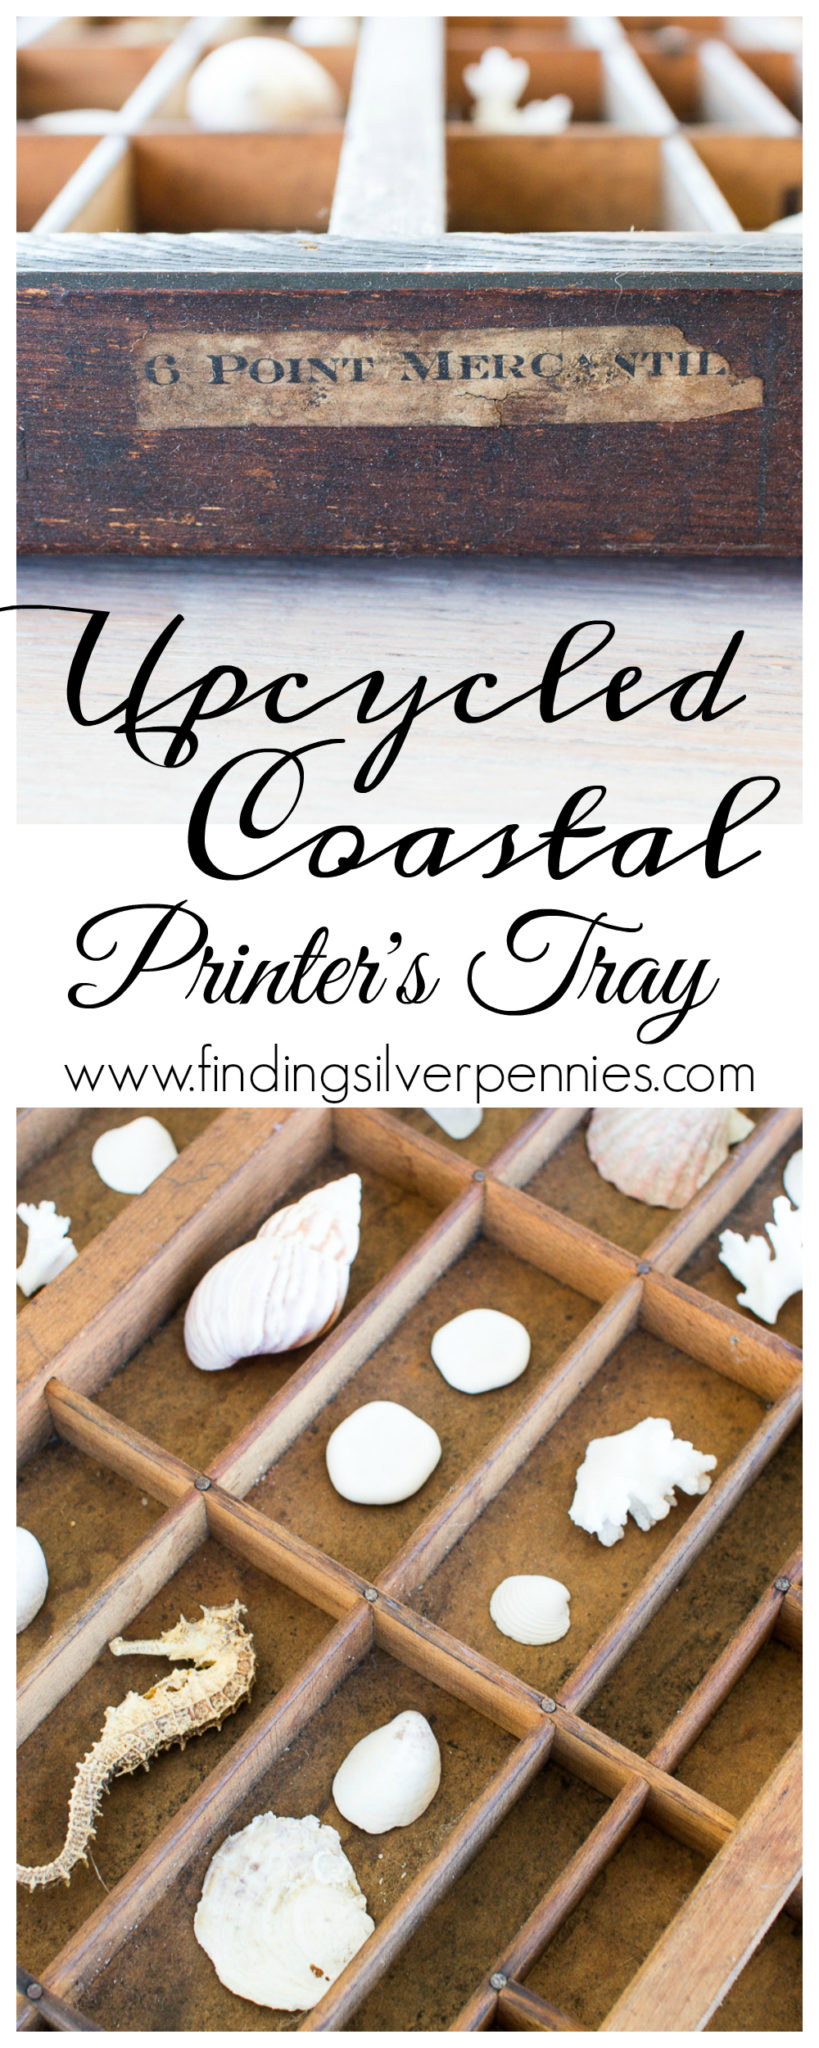 How to Create an Upcycled Coastal Printers Tray I Finding Silver Pennies